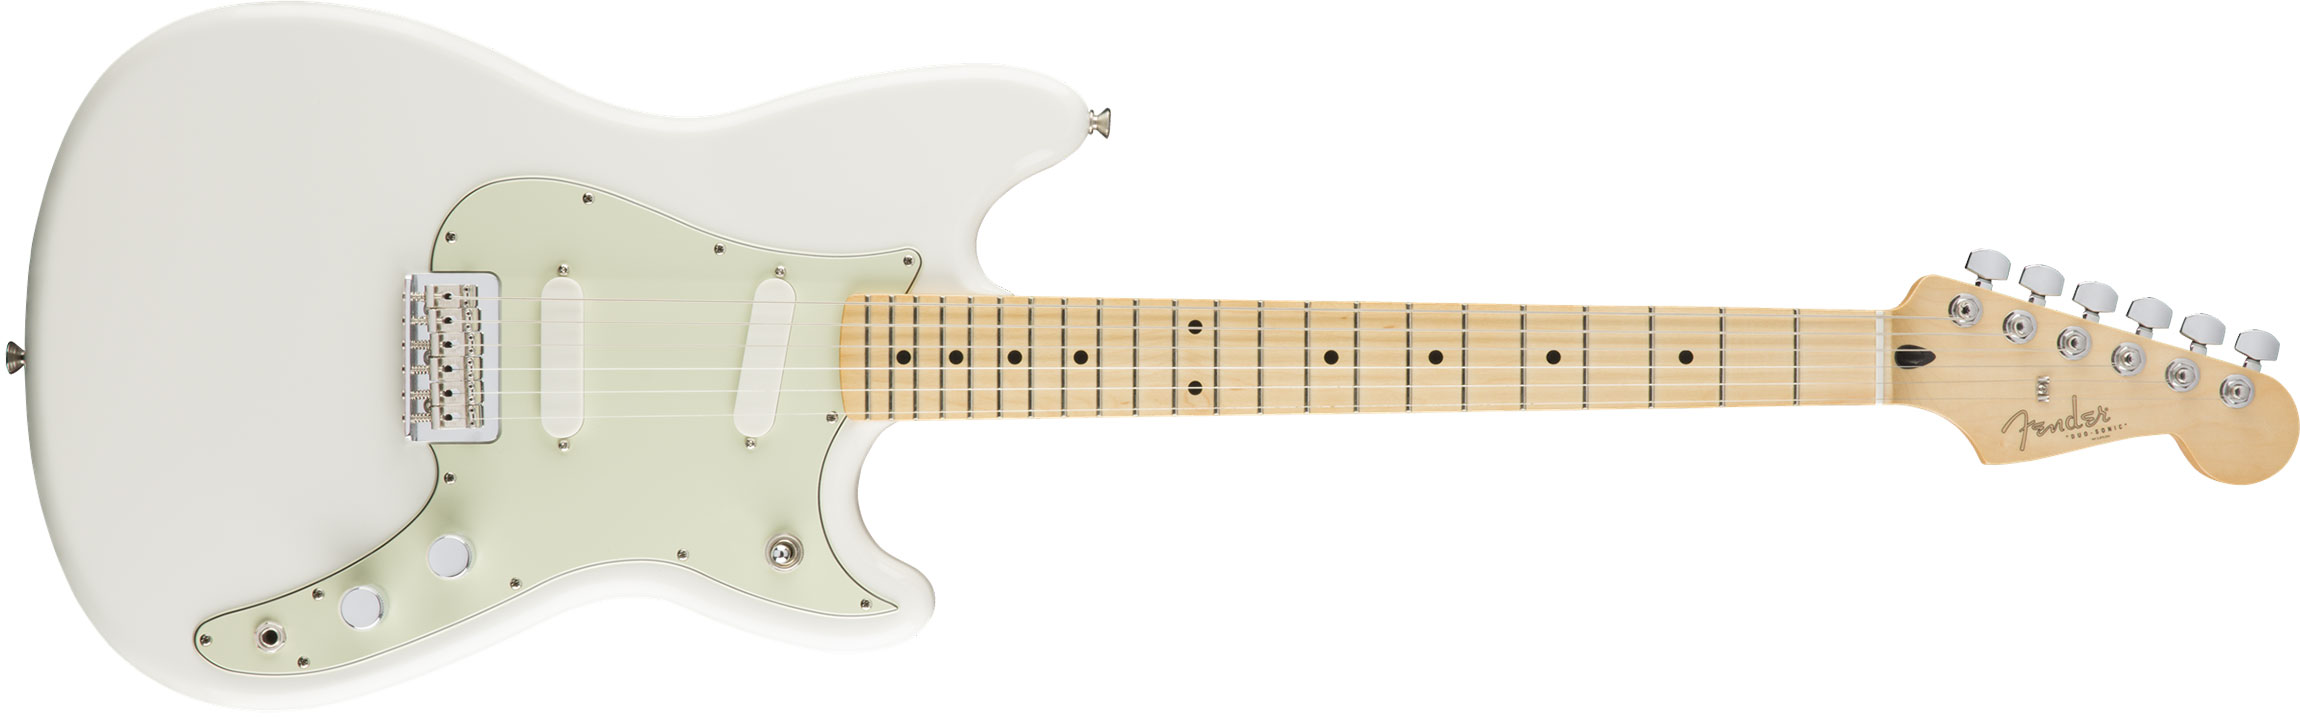 GUITARRA FENDER 014 4012 - OFFSET DUO-SONIC MN - 580 - ARCTIC WHITE